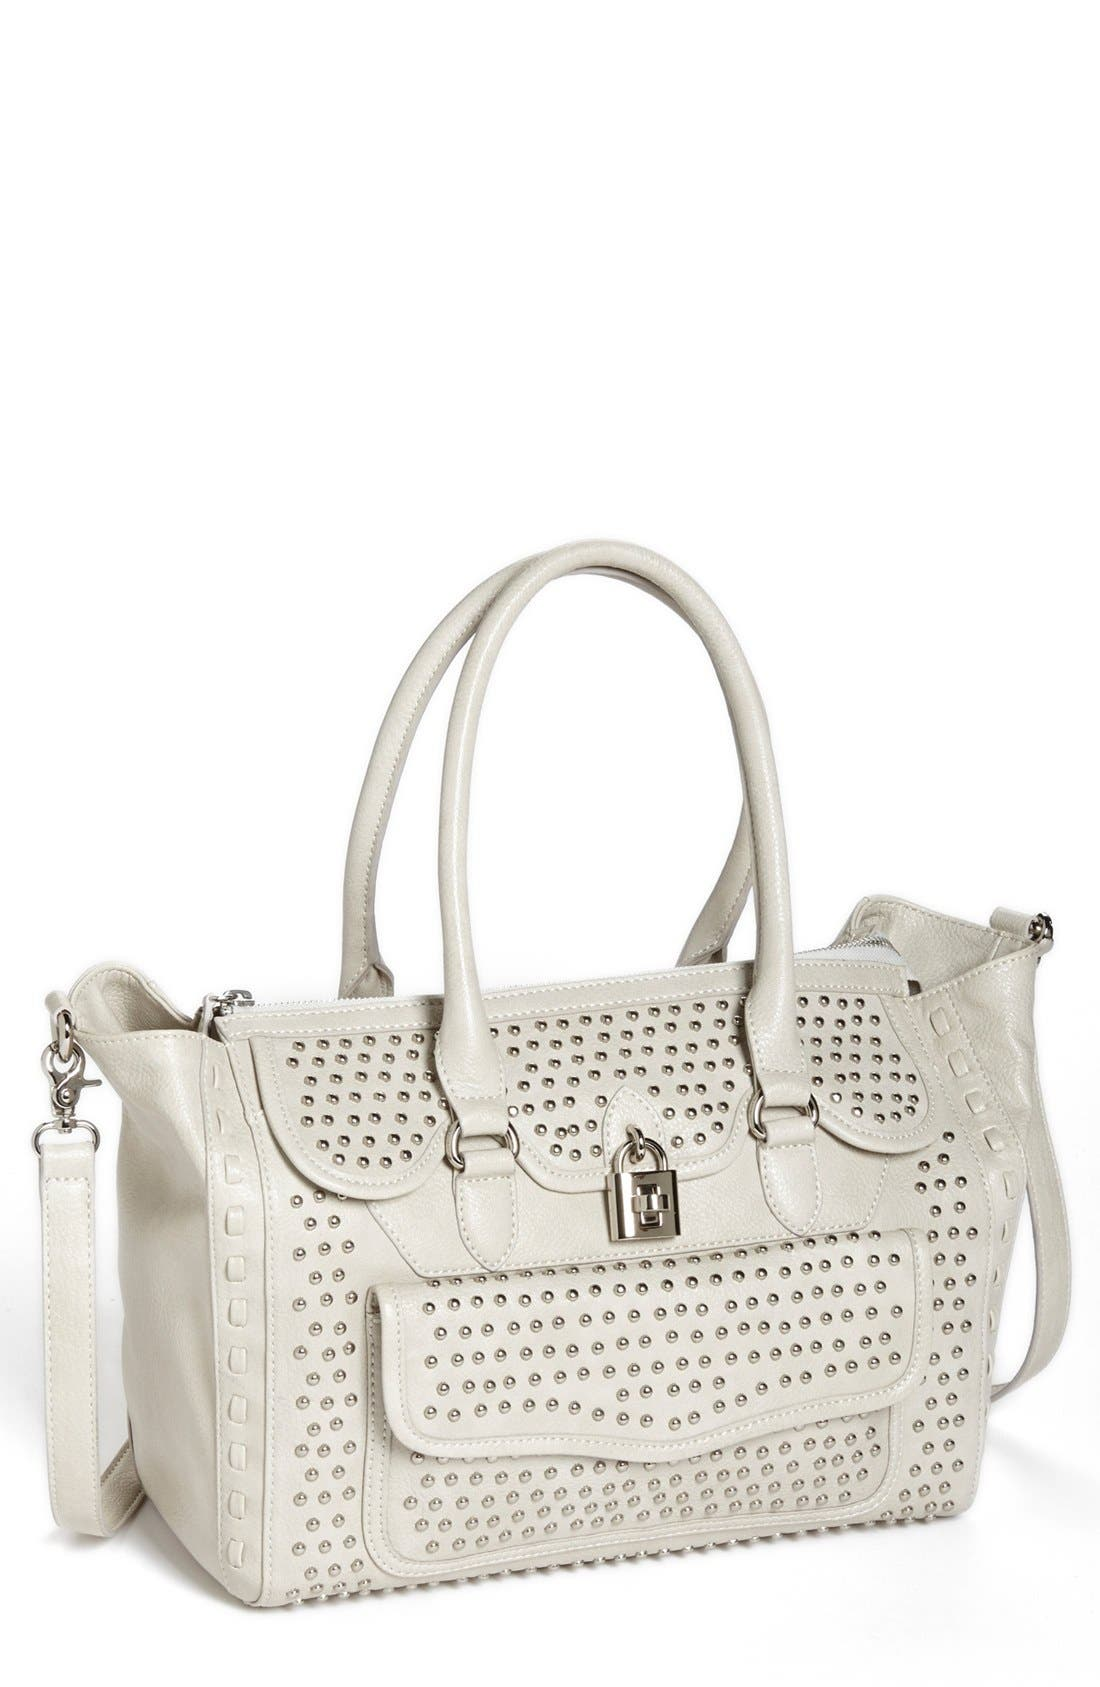 Alternate Image 1 Selected - Jessica Simpson 'Madison' Pebble Studded Faux Leather Satchel